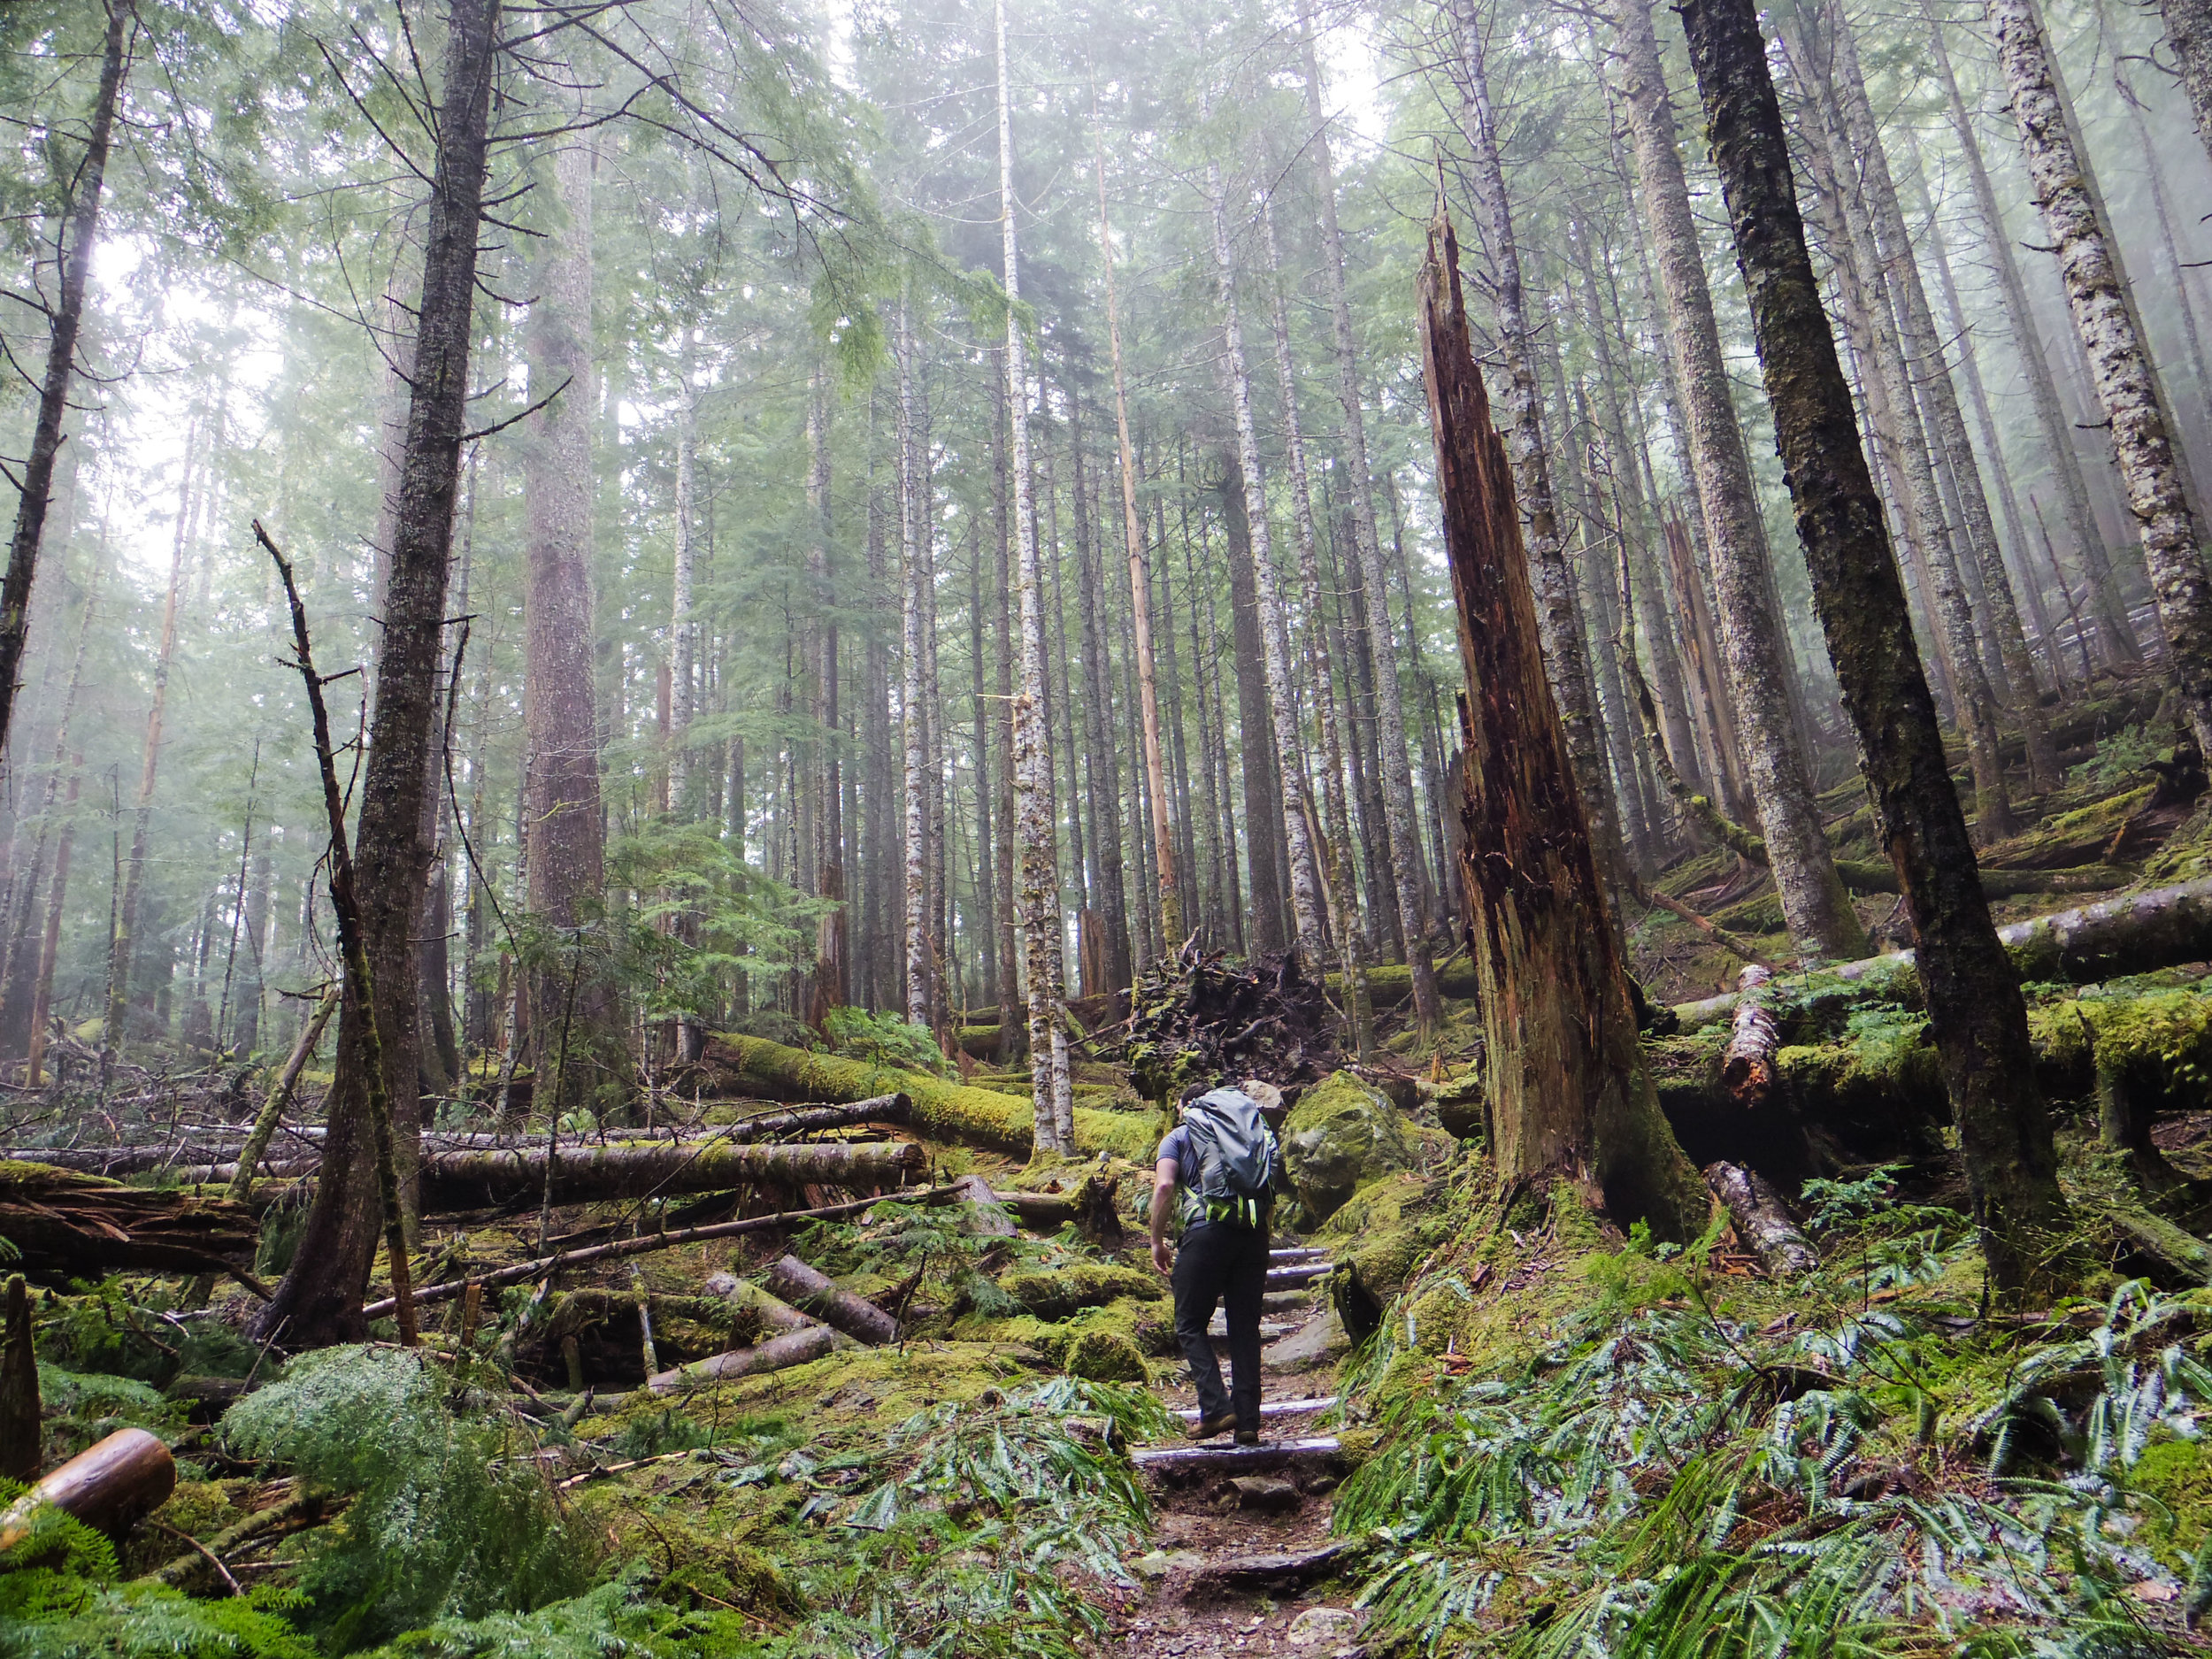 Hiking in the Olympic National Forest